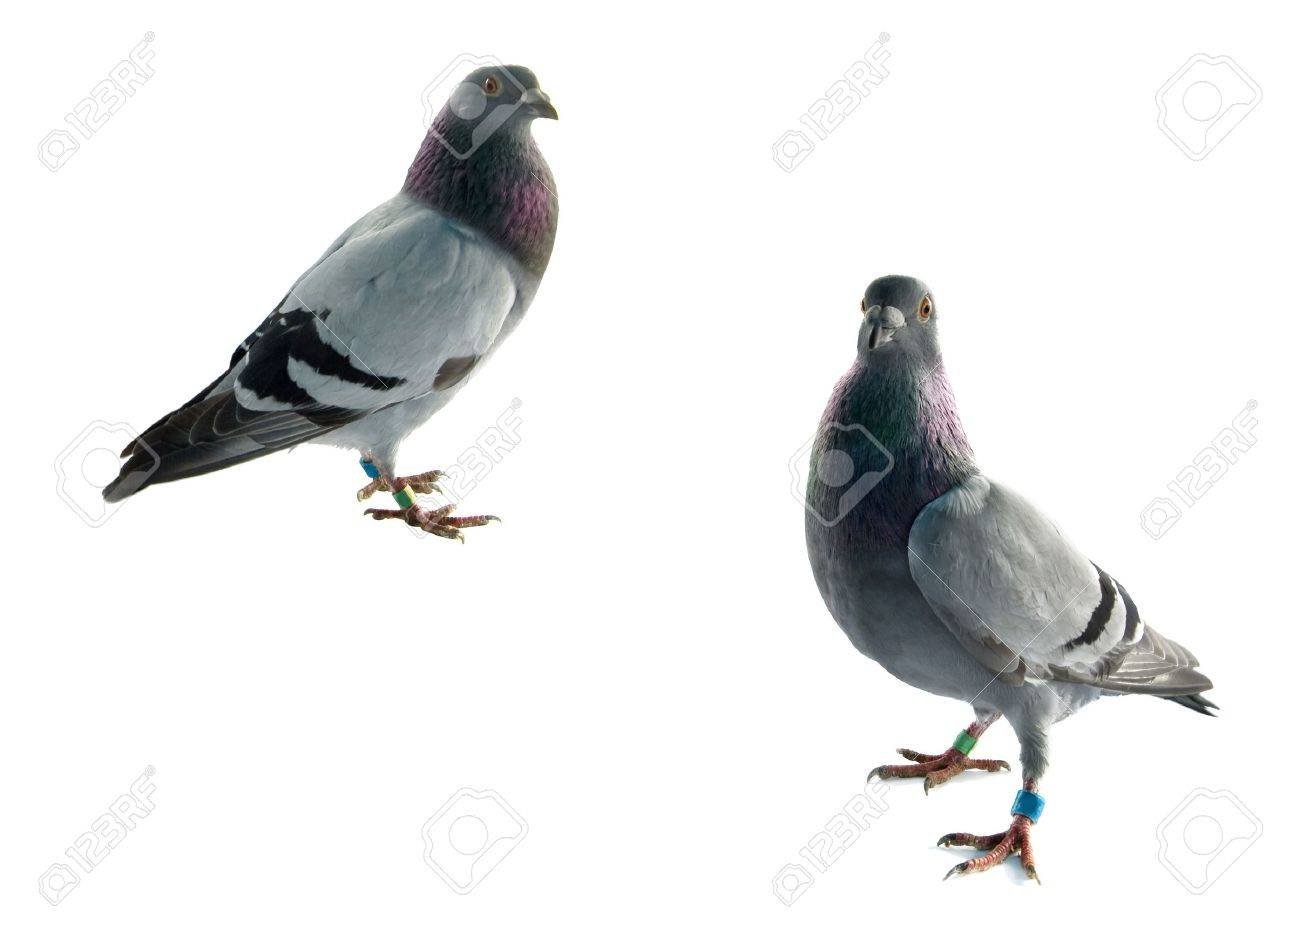 two grey pigeons isolated on white background - 7253983